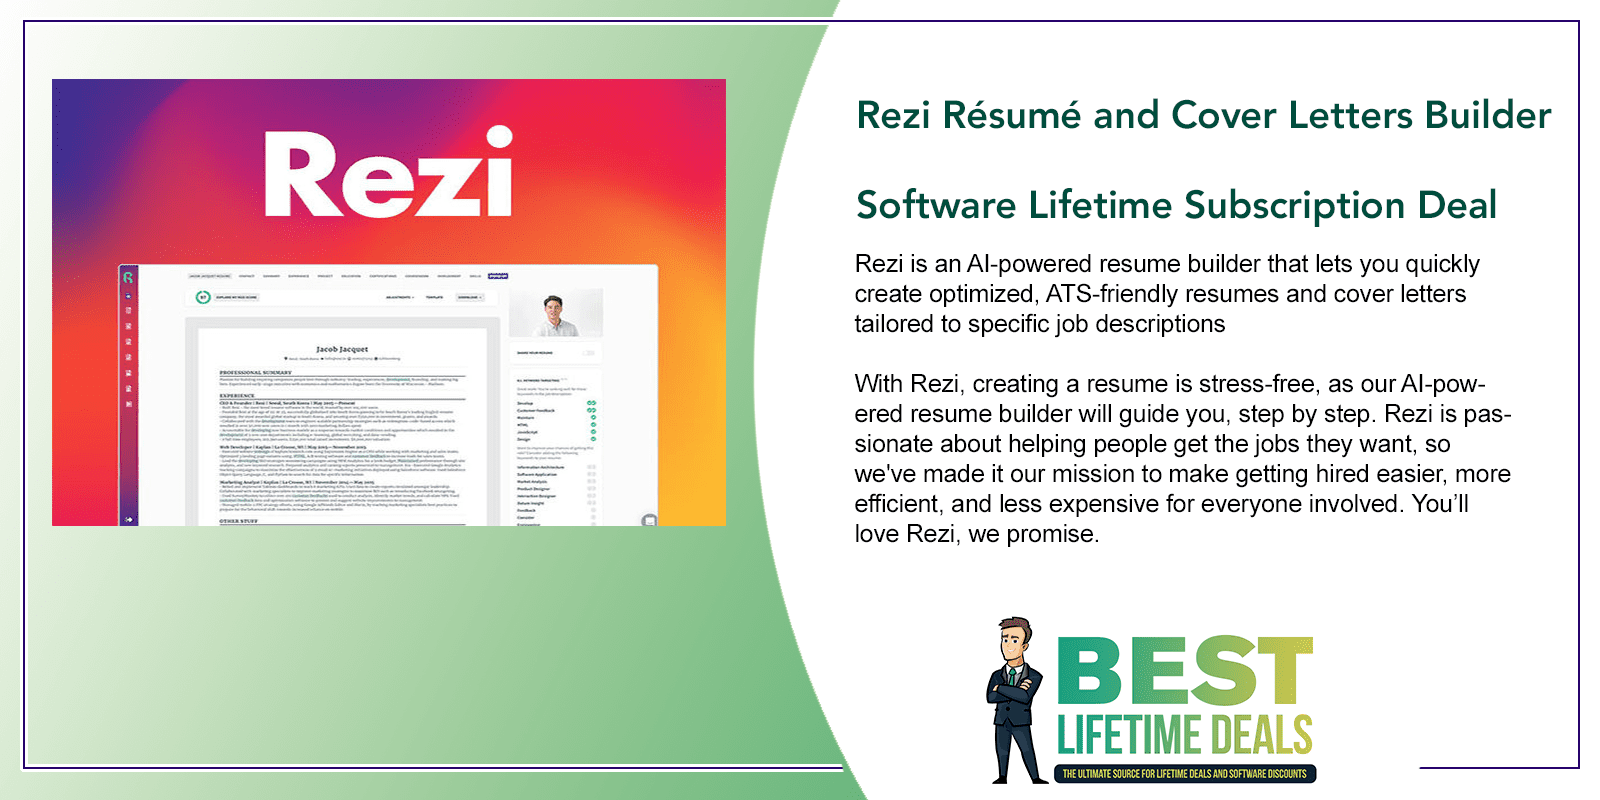 Rezi Resume and Cover Letters Builder Software Featured Image